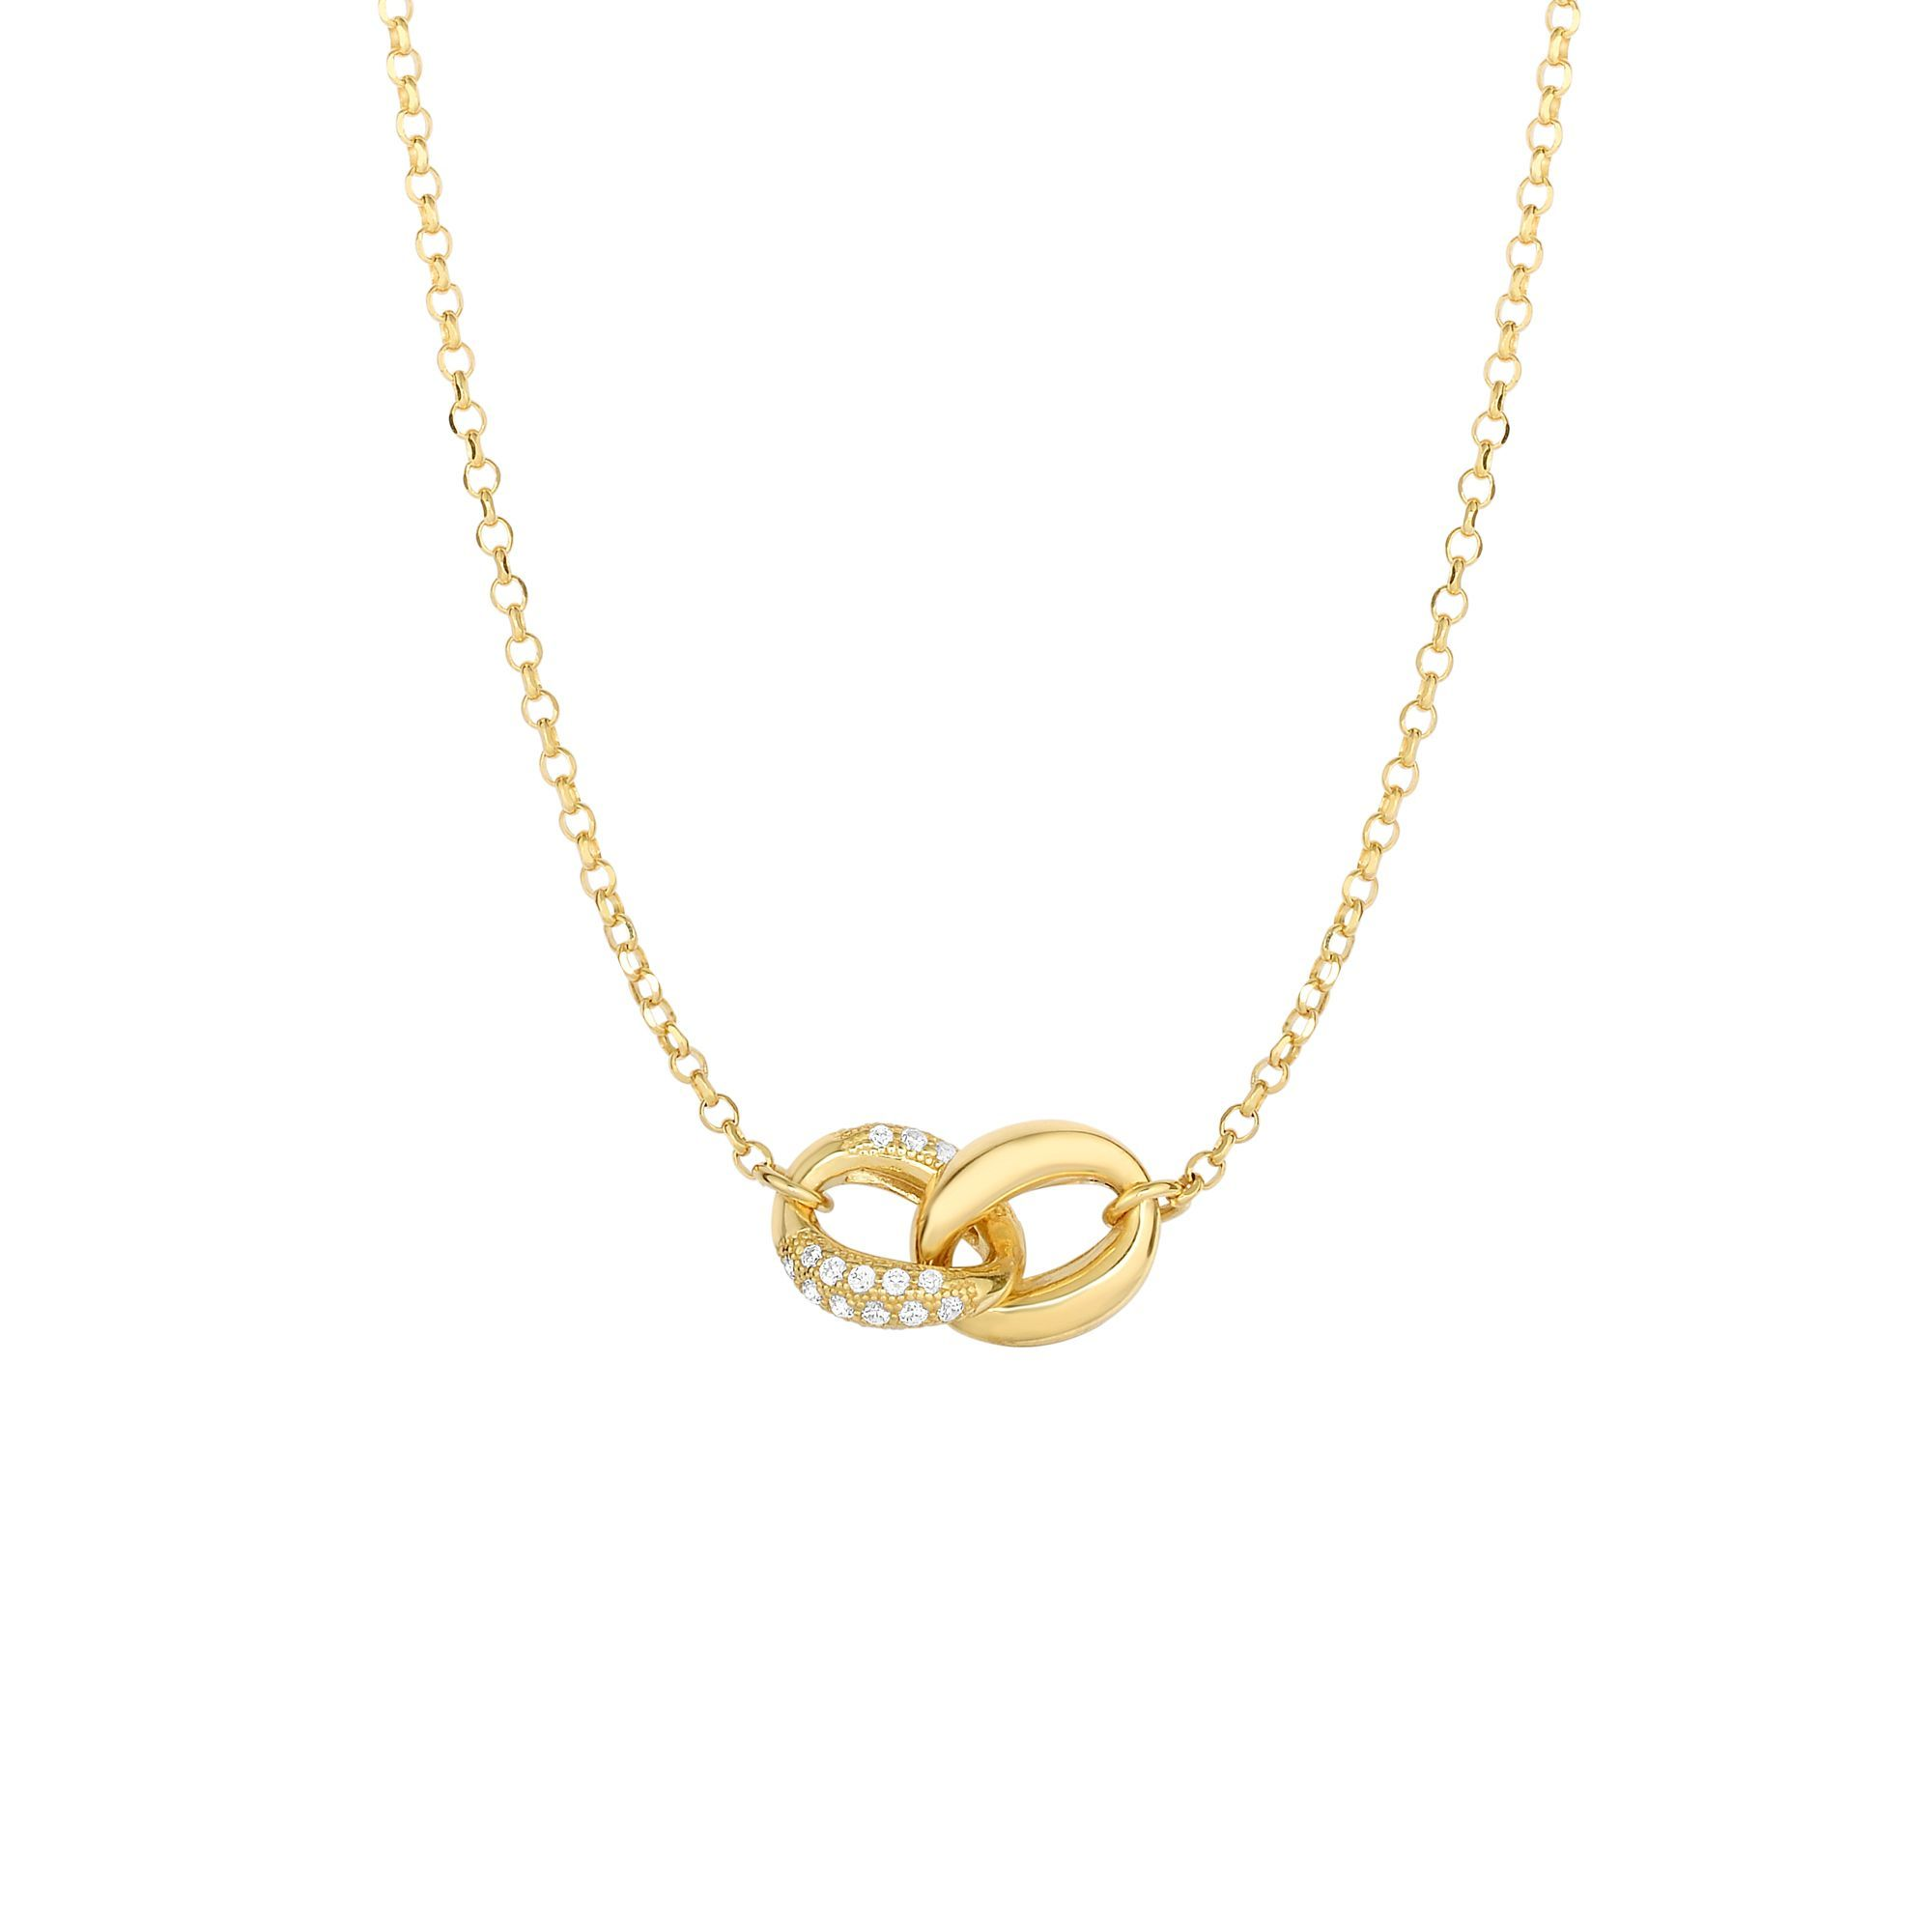 14 Karat Yellow Gold Diamond Interlocking Infinity Necklace